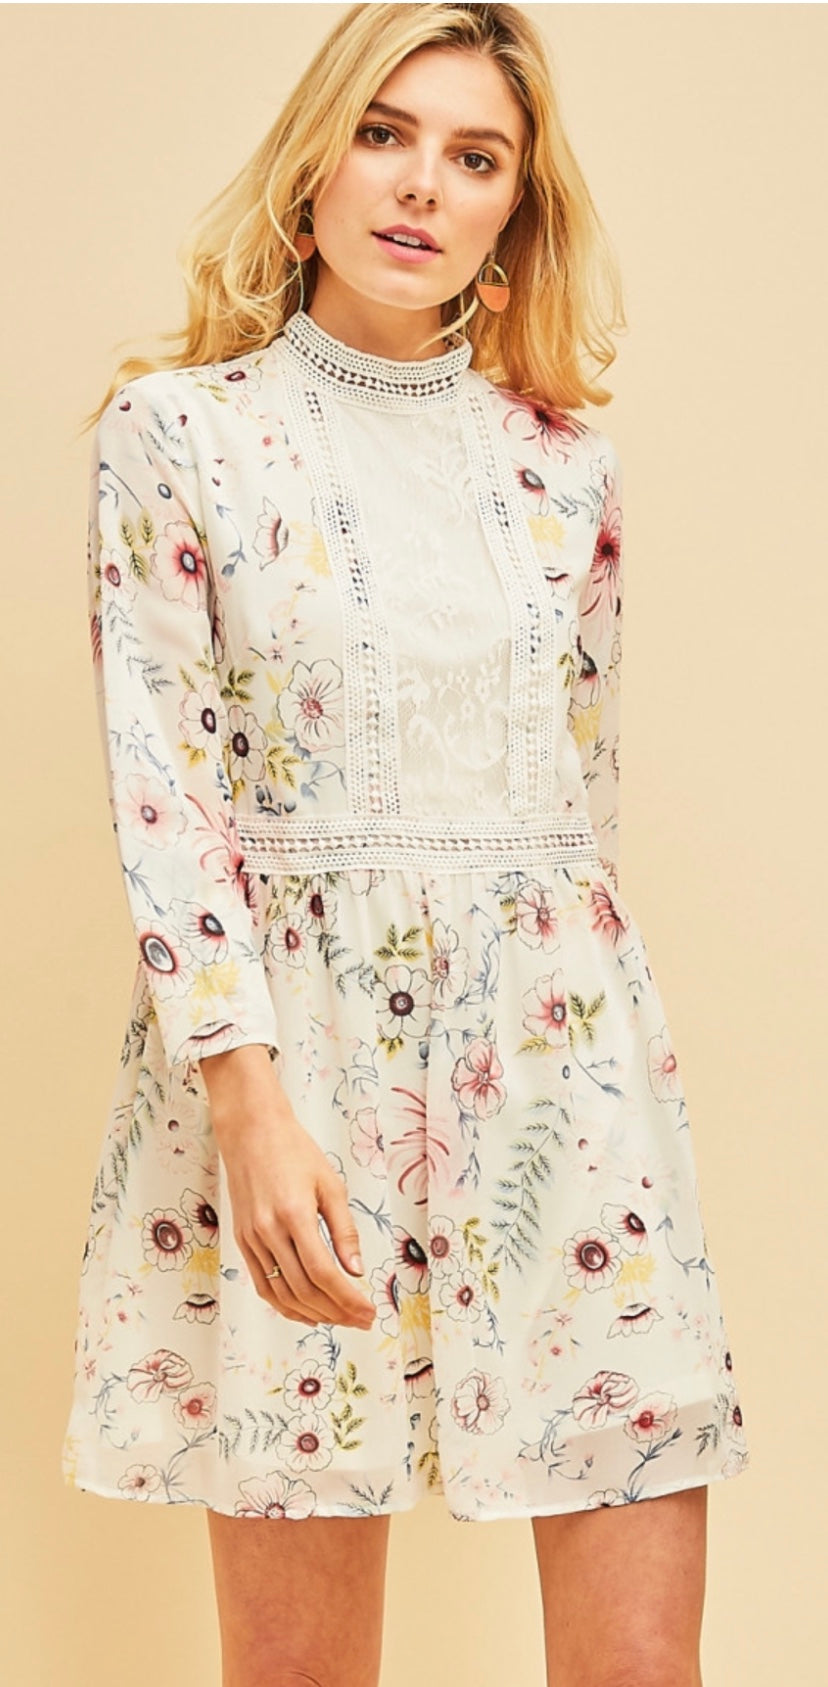 Floral Mock Neck Dress